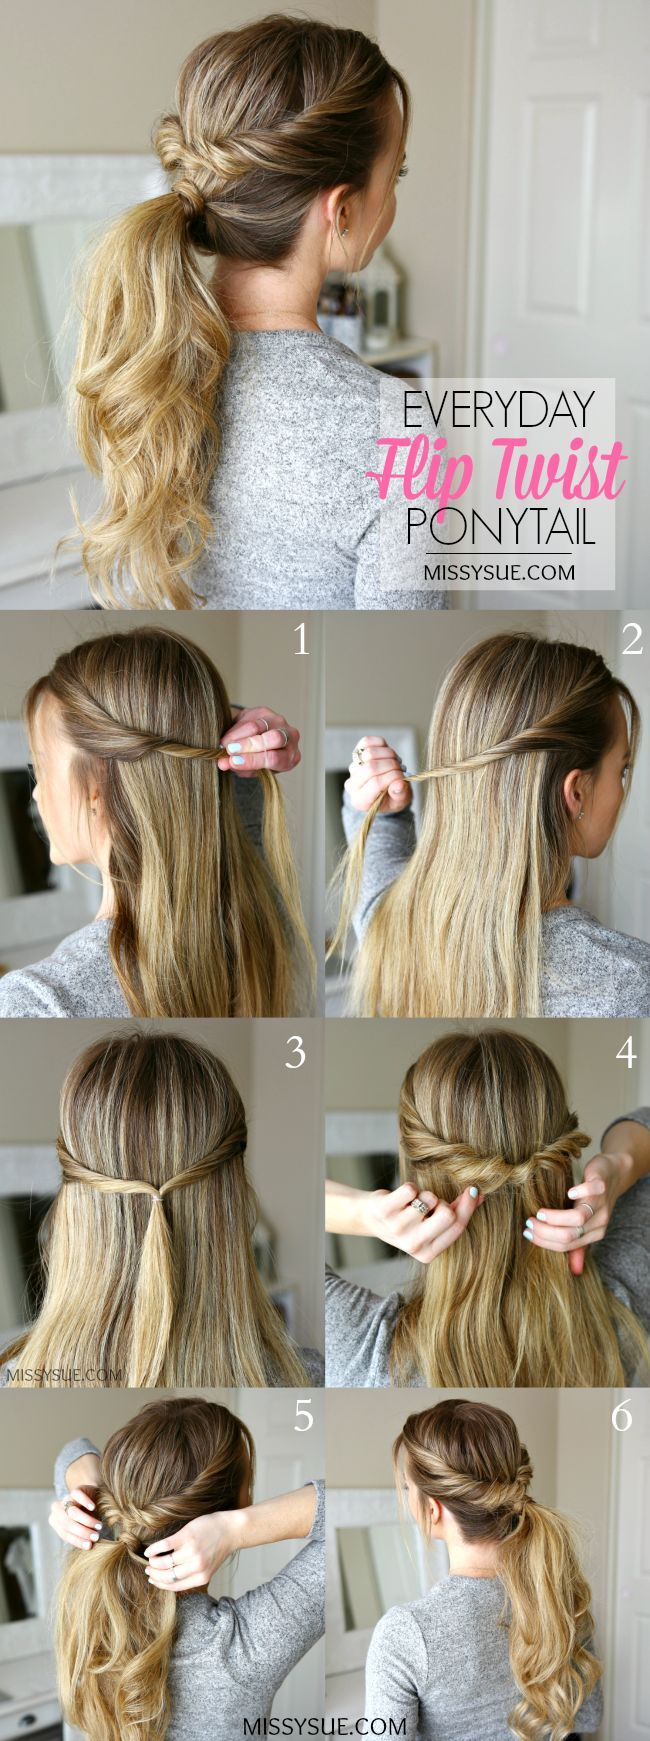 Everyday Flip Twist Ponytail #hair #hairstyles #ponytails #hairtutorial